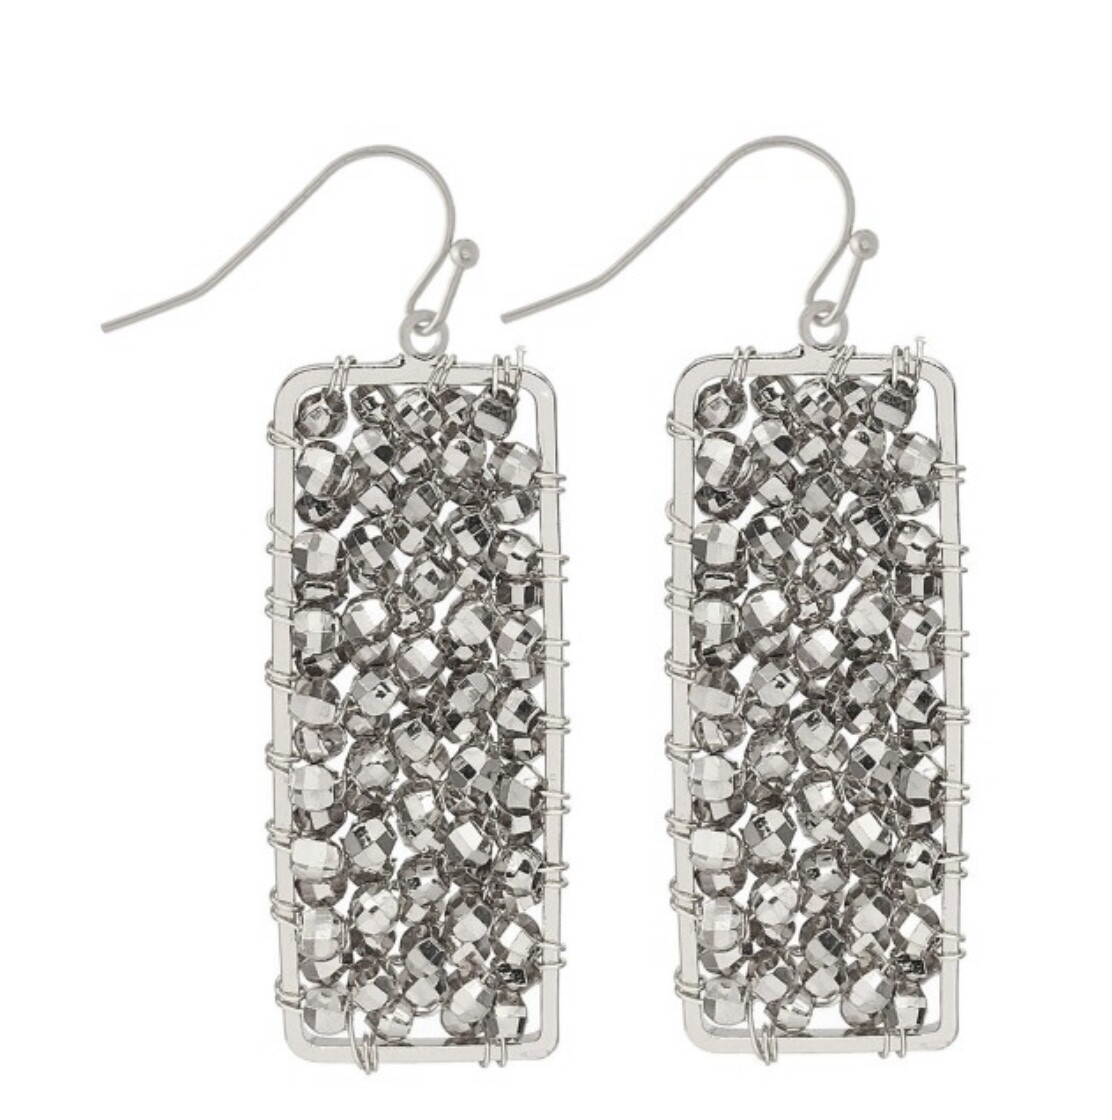 UNIQUELY YOU EARRINGS